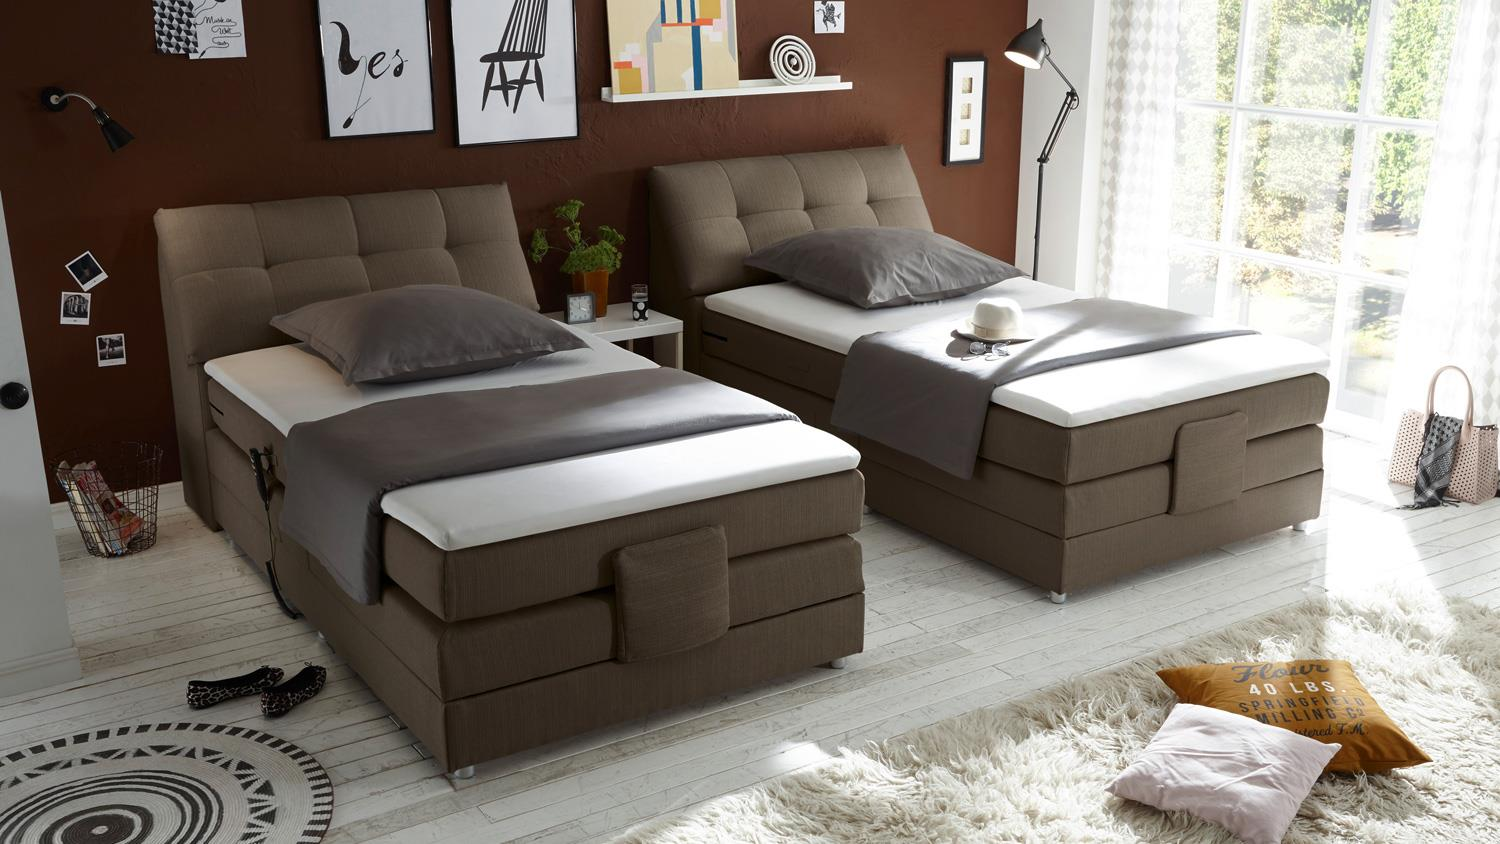 boxspringbett concort stoff stone komfortbett mit motor 120x200 cm. Black Bedroom Furniture Sets. Home Design Ideas